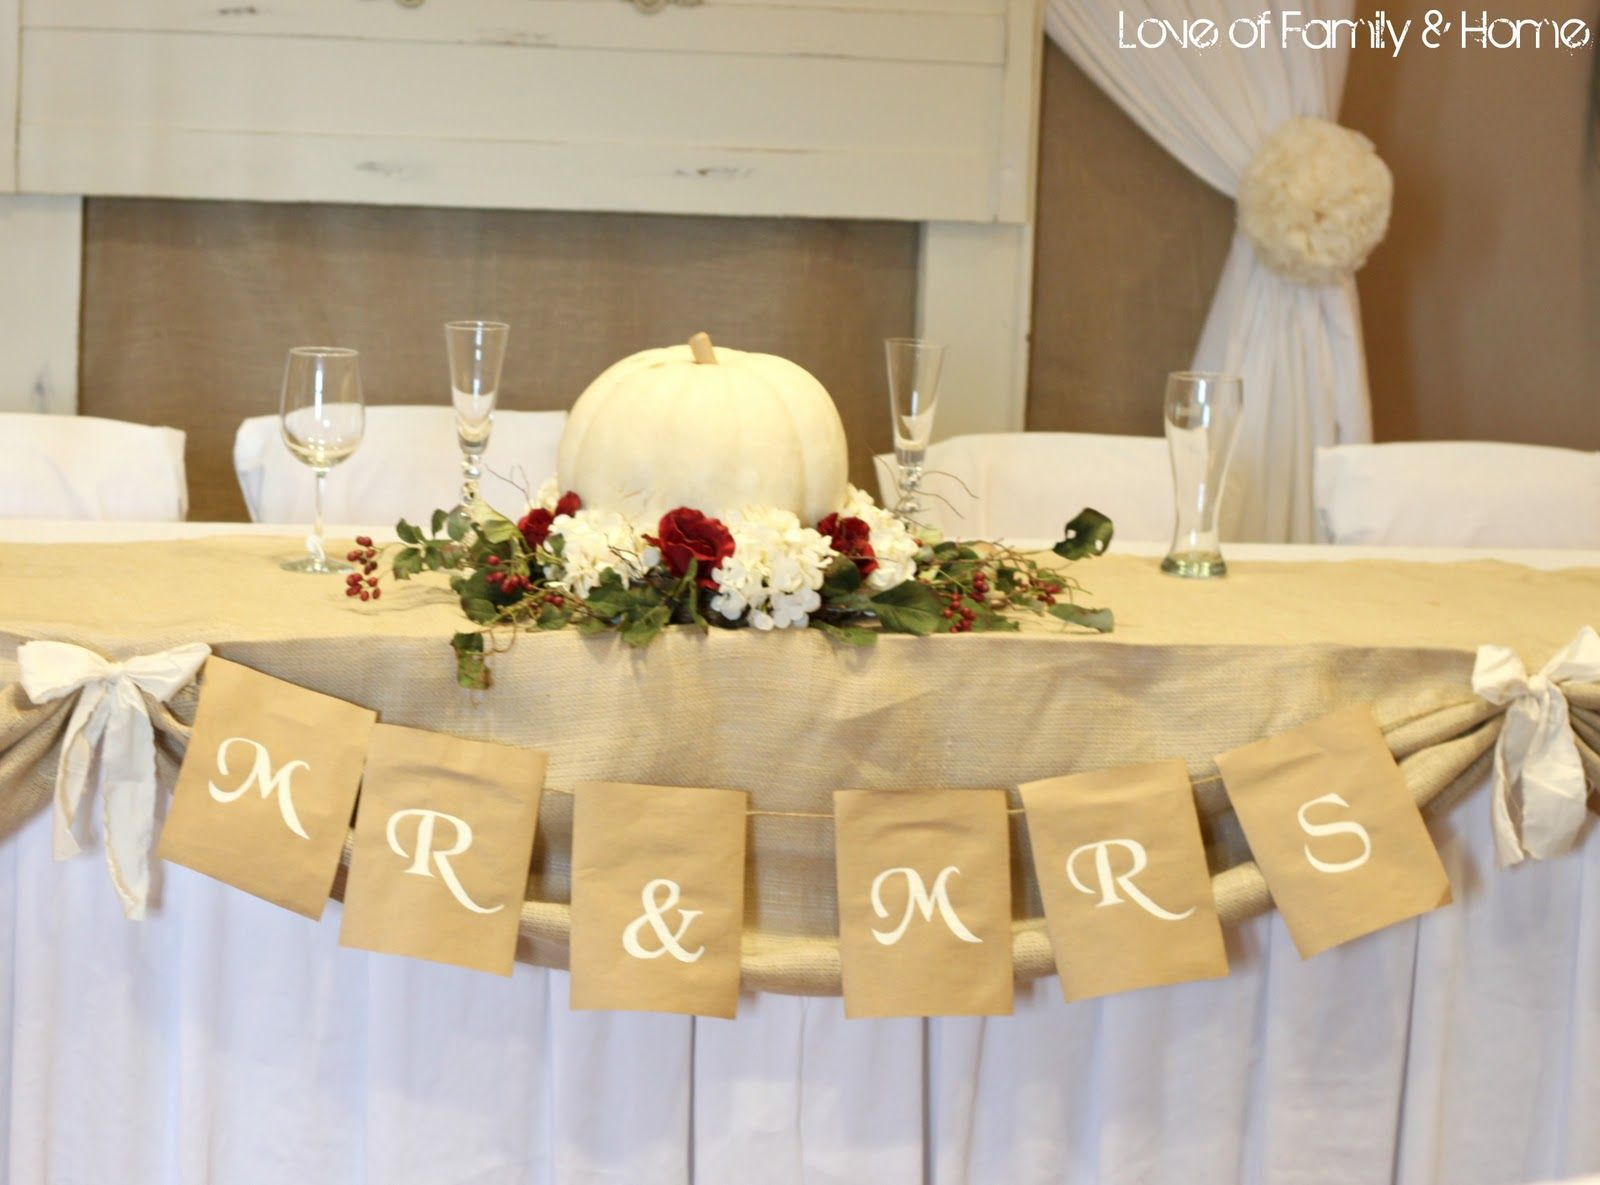 Home wedding decor ideas  Sign for head table not in burlap in black white yellow roses on